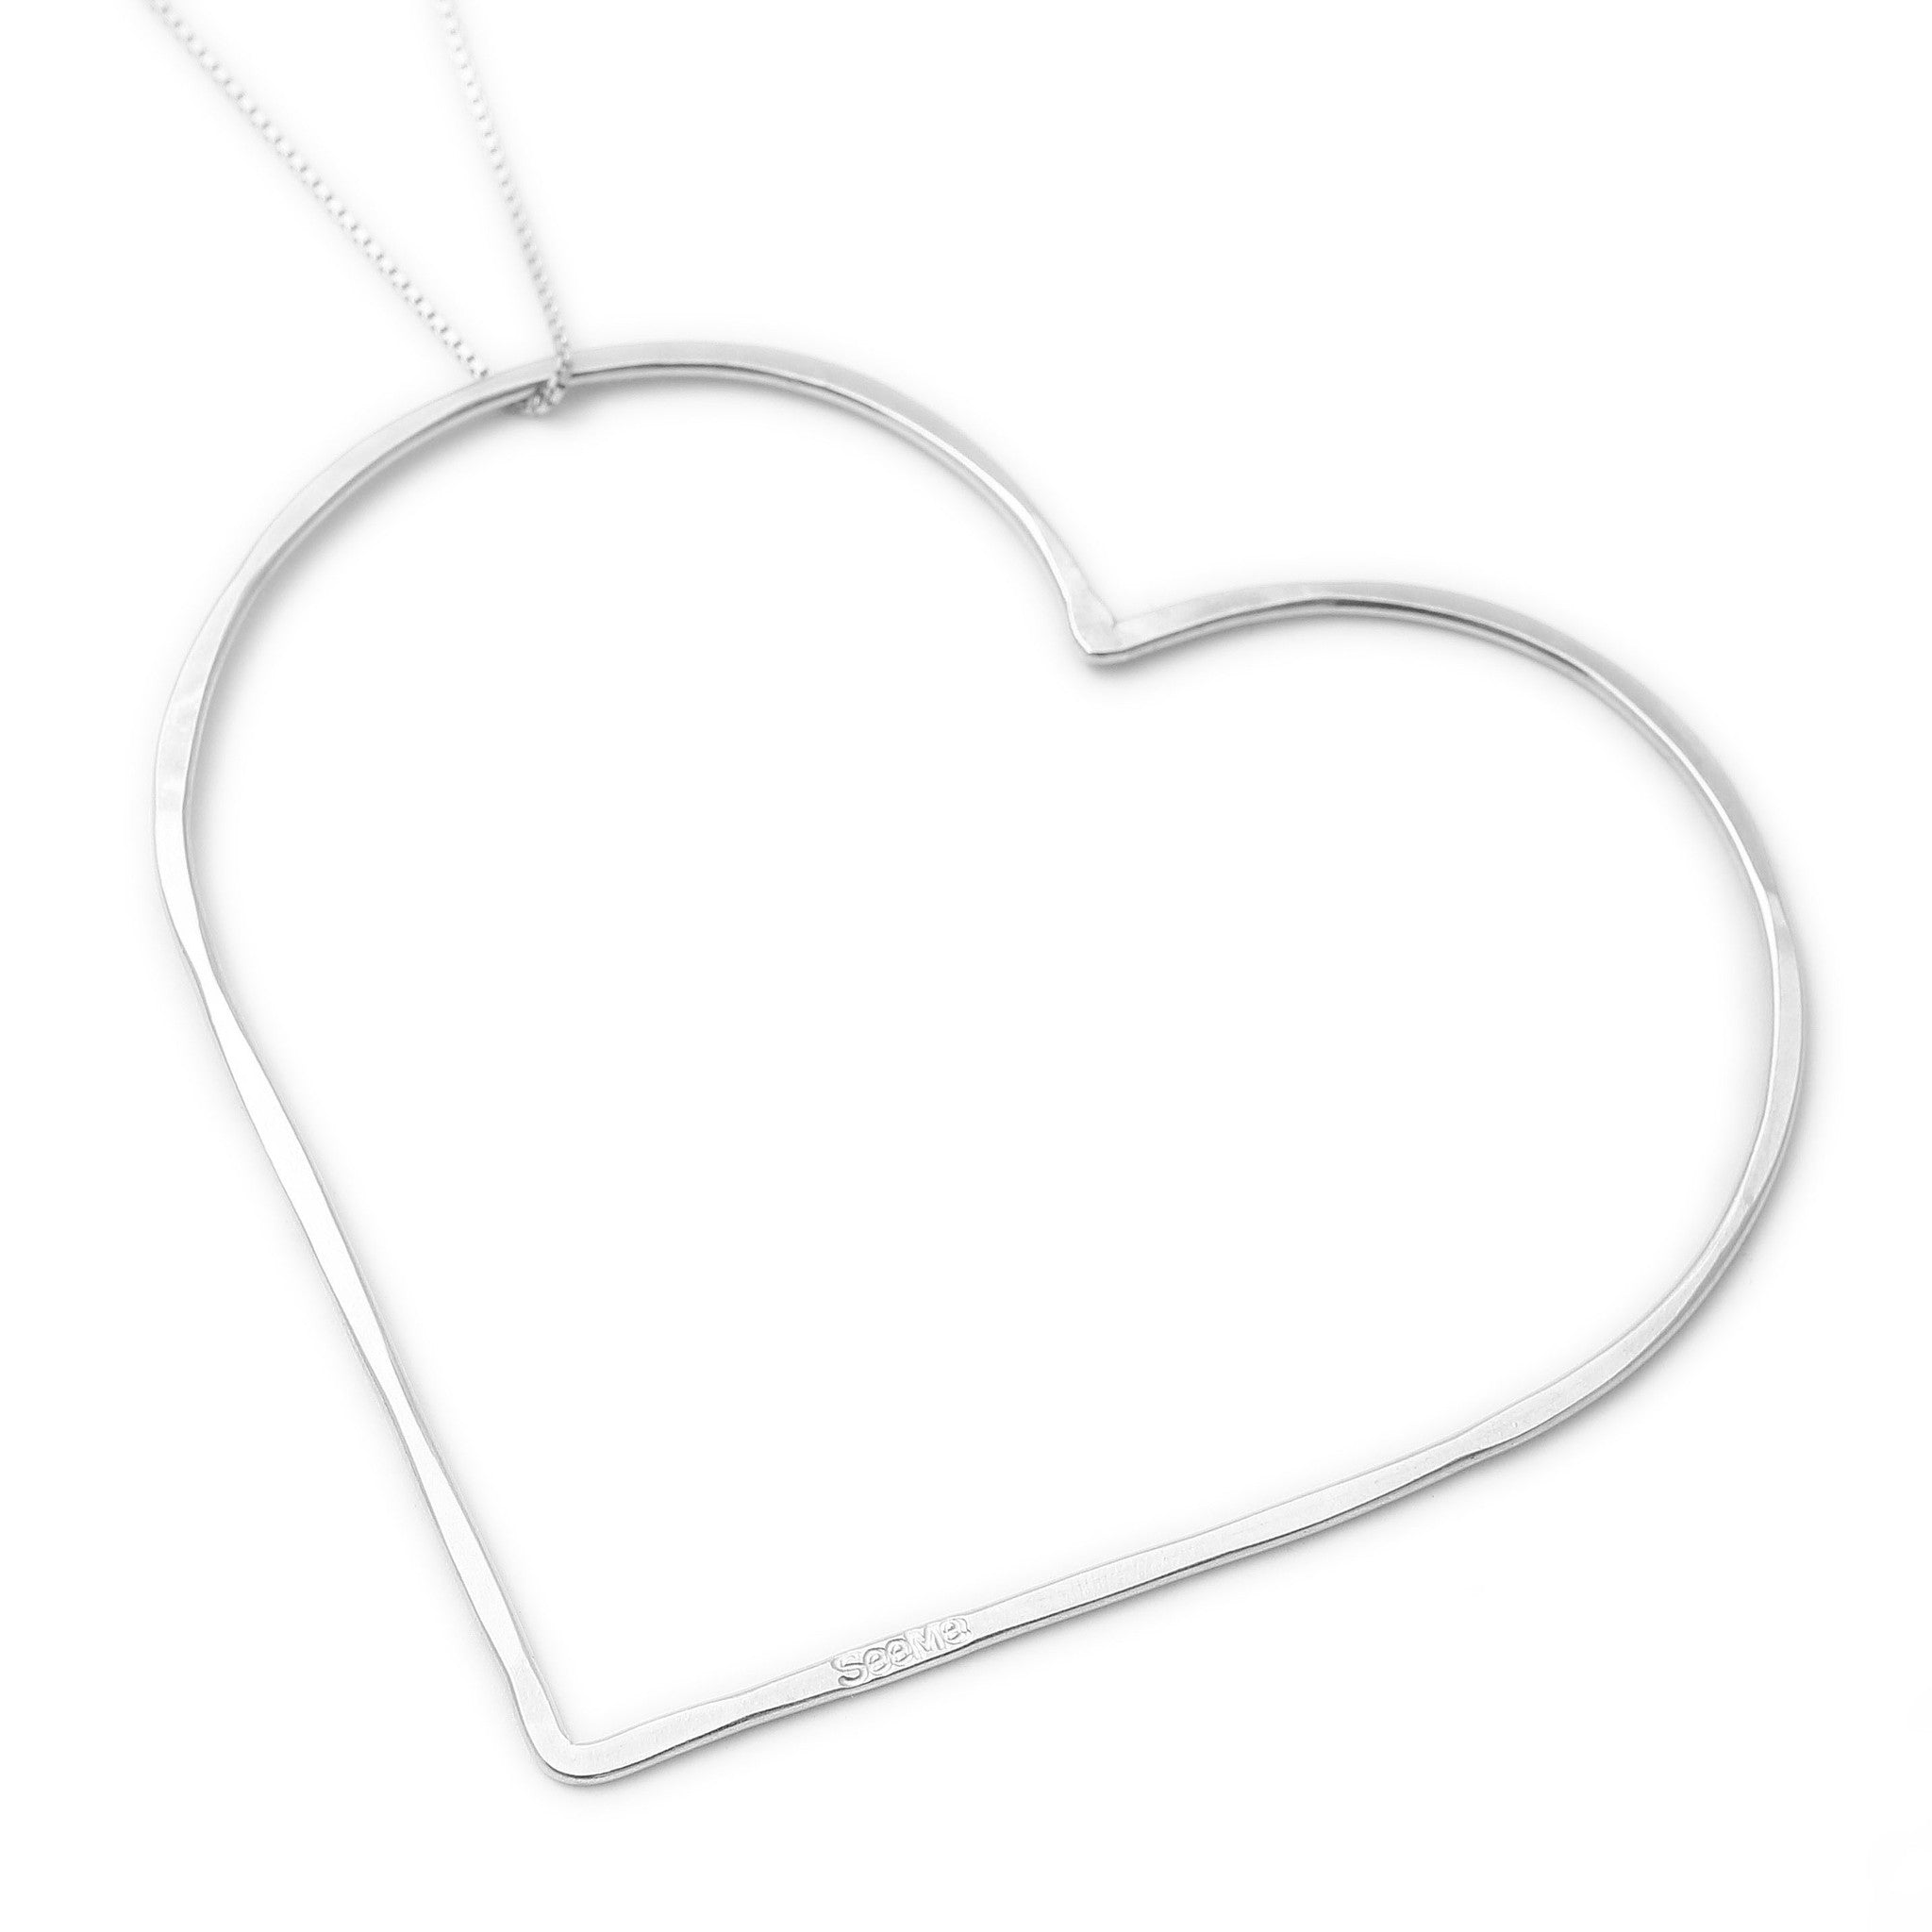 Alma seeme meaningful jewelry big heart necklace seeme jewelry and accessories 2 aloadofball Gallery